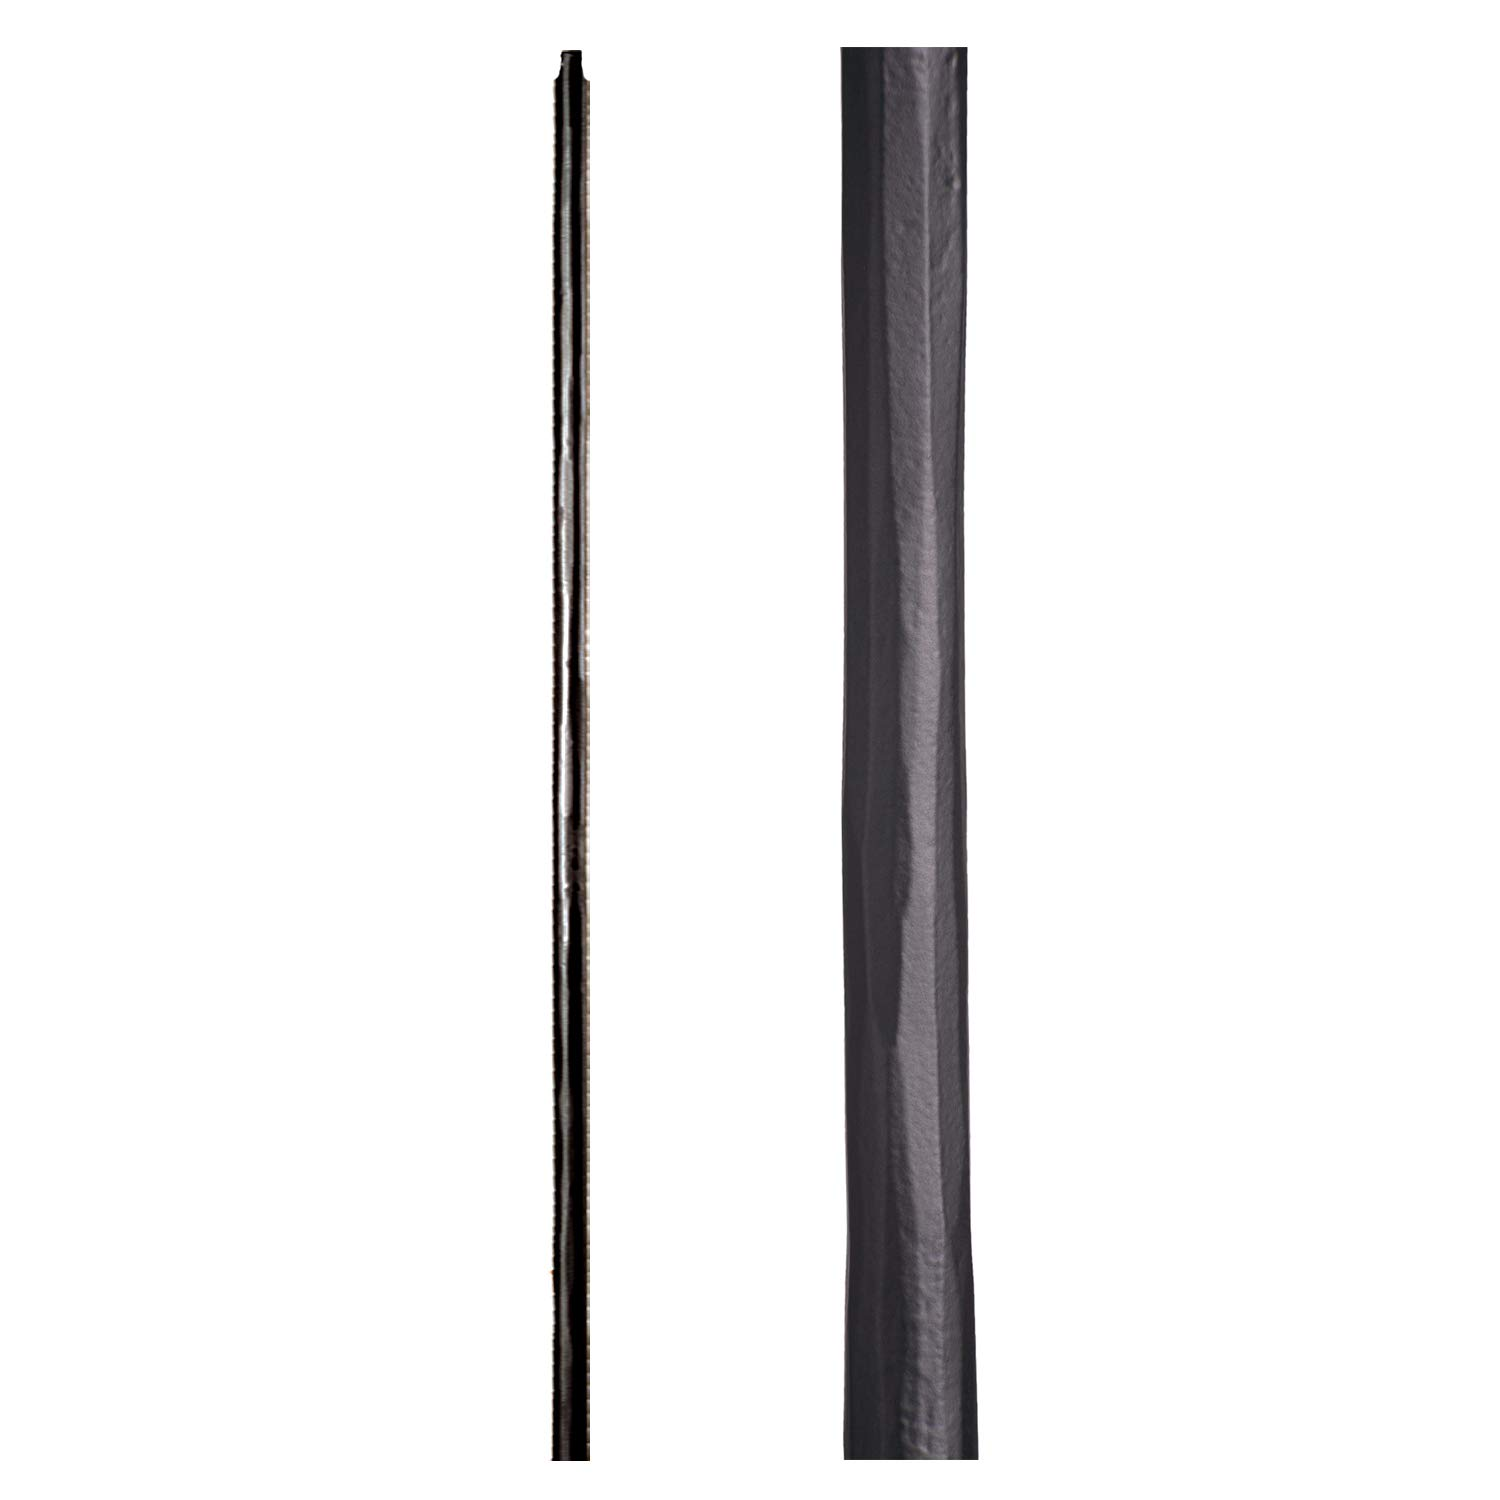 Satin Black 1.1.22 Plain Round Iron Newel Support Post for Stair Remodeling by House of Forgings